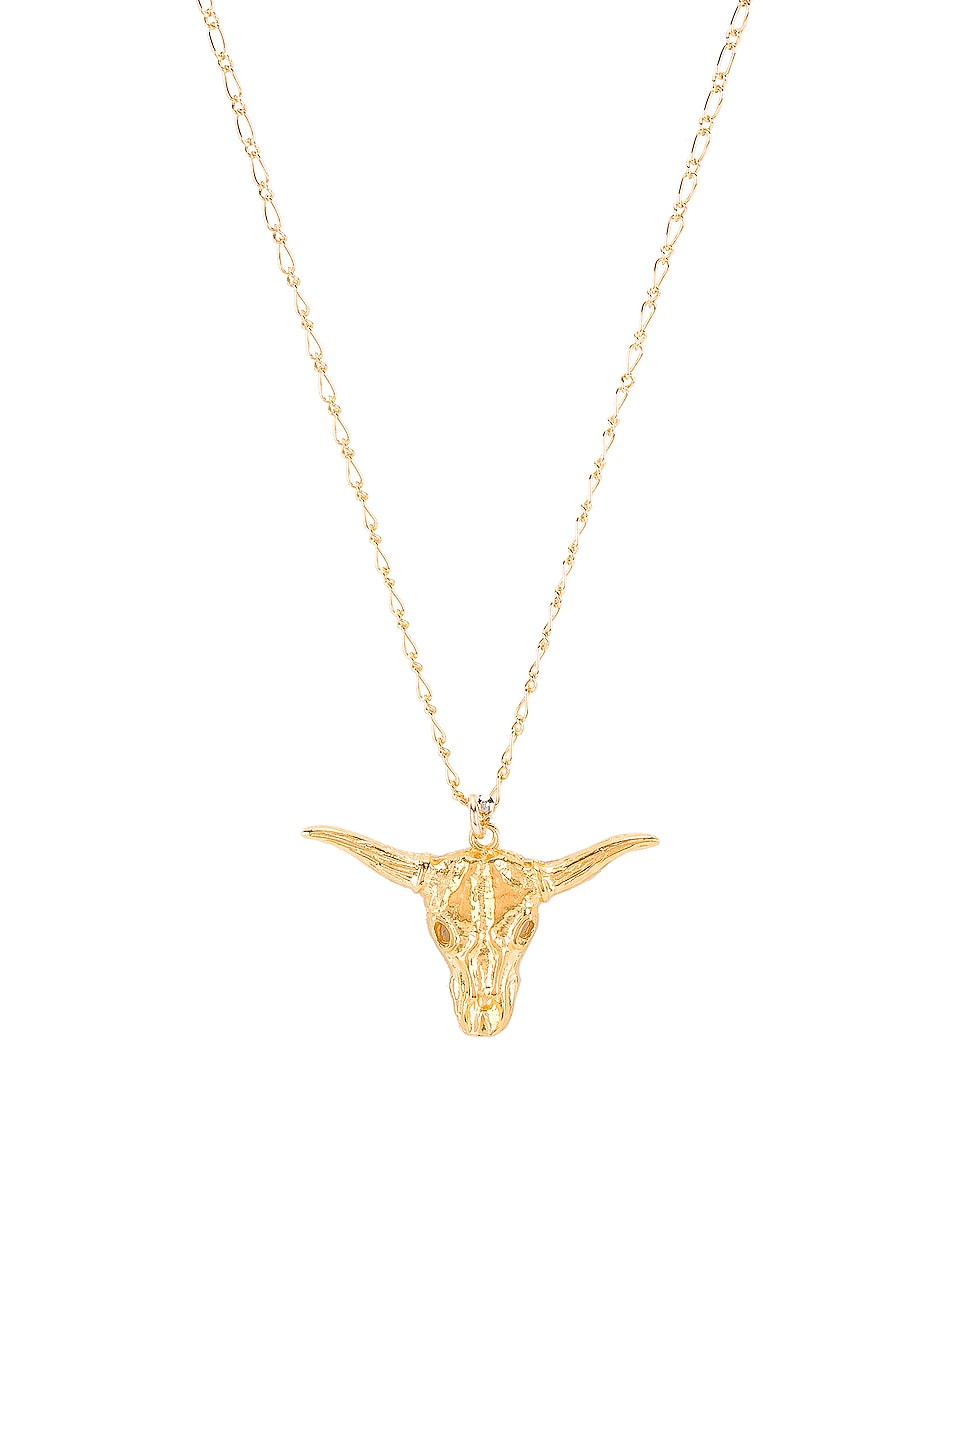 Natalie B Jewelry COLLAR BIG HORN